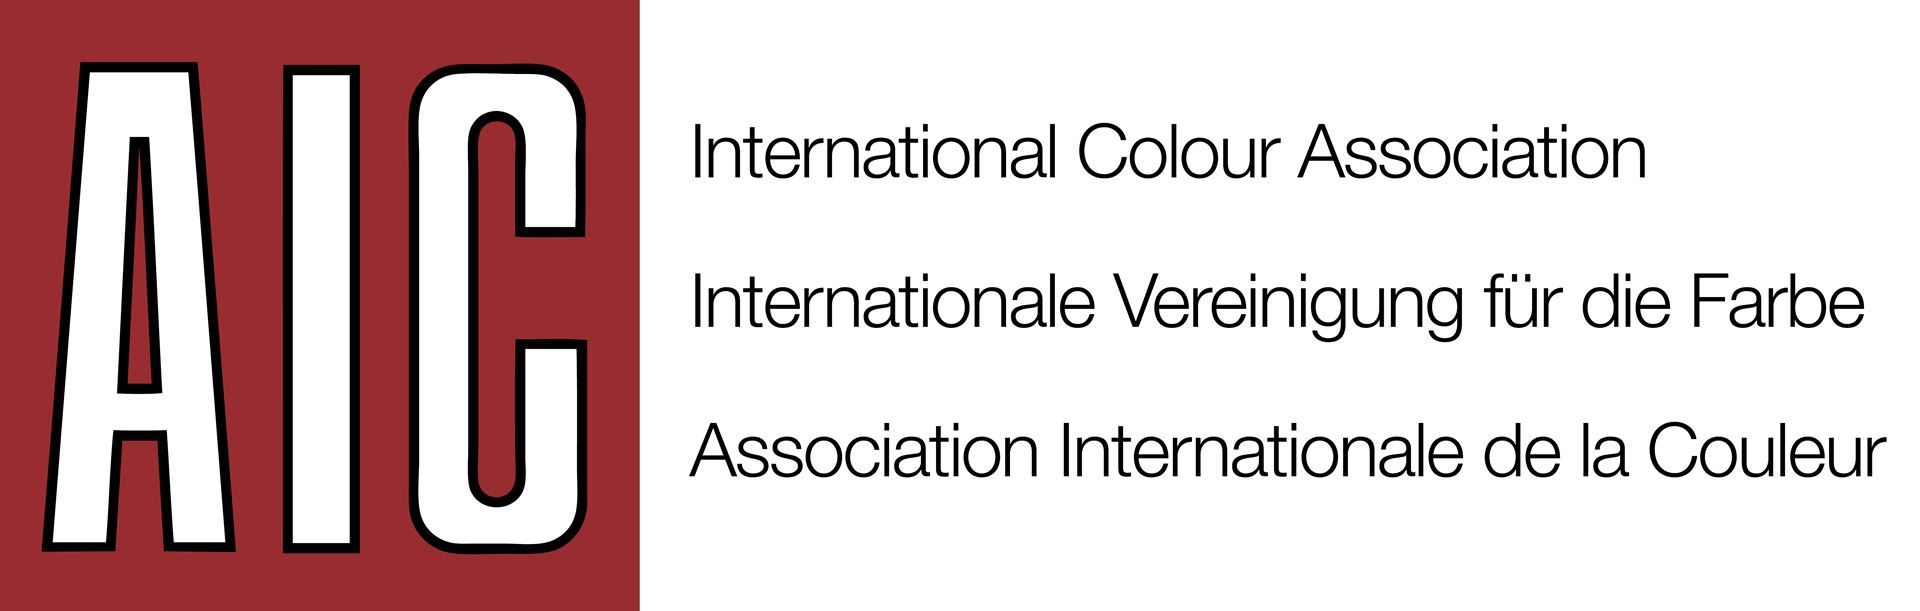 International Colour Association (ICA)